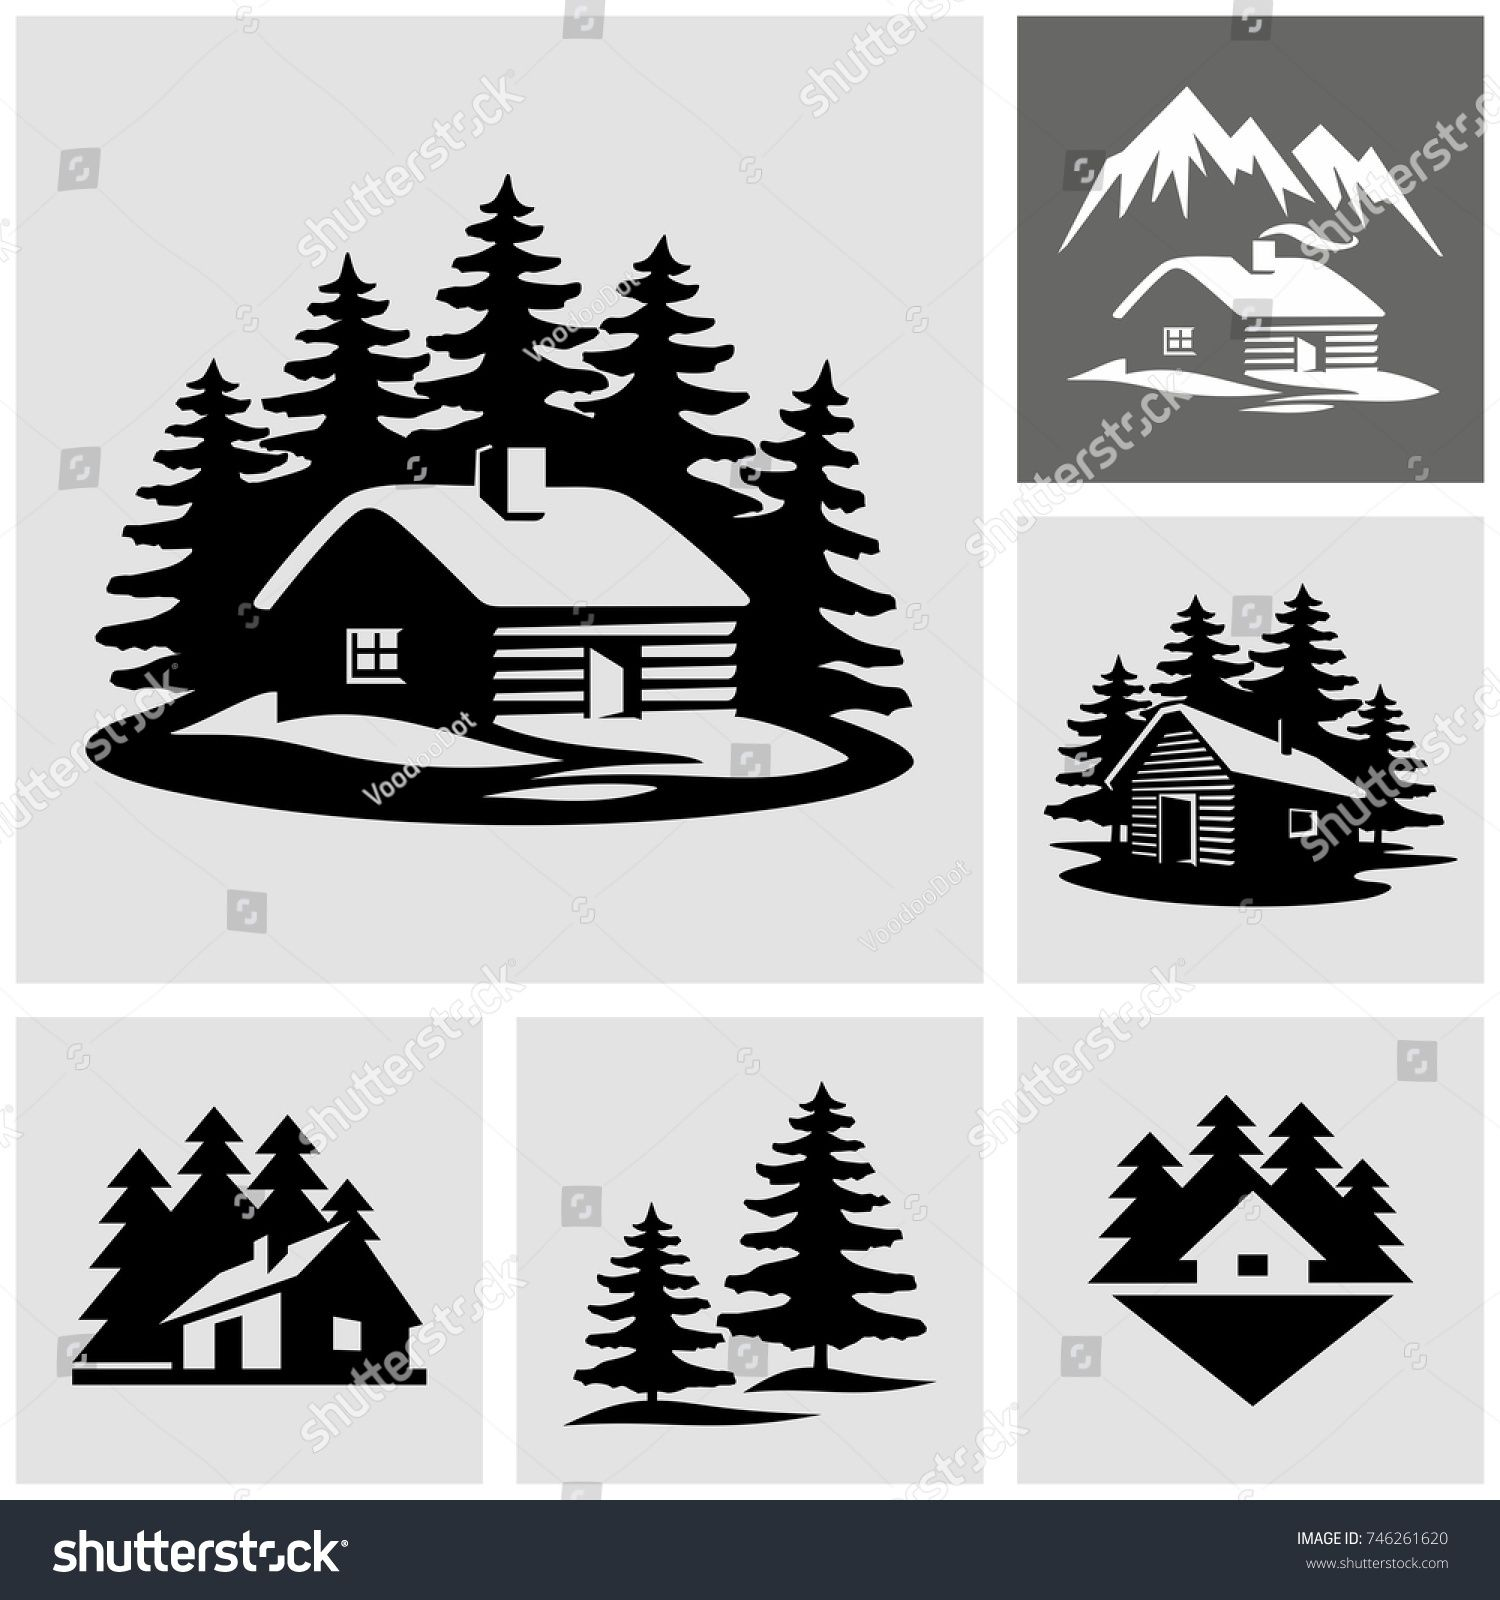 Log cabin in the woods vector icon.